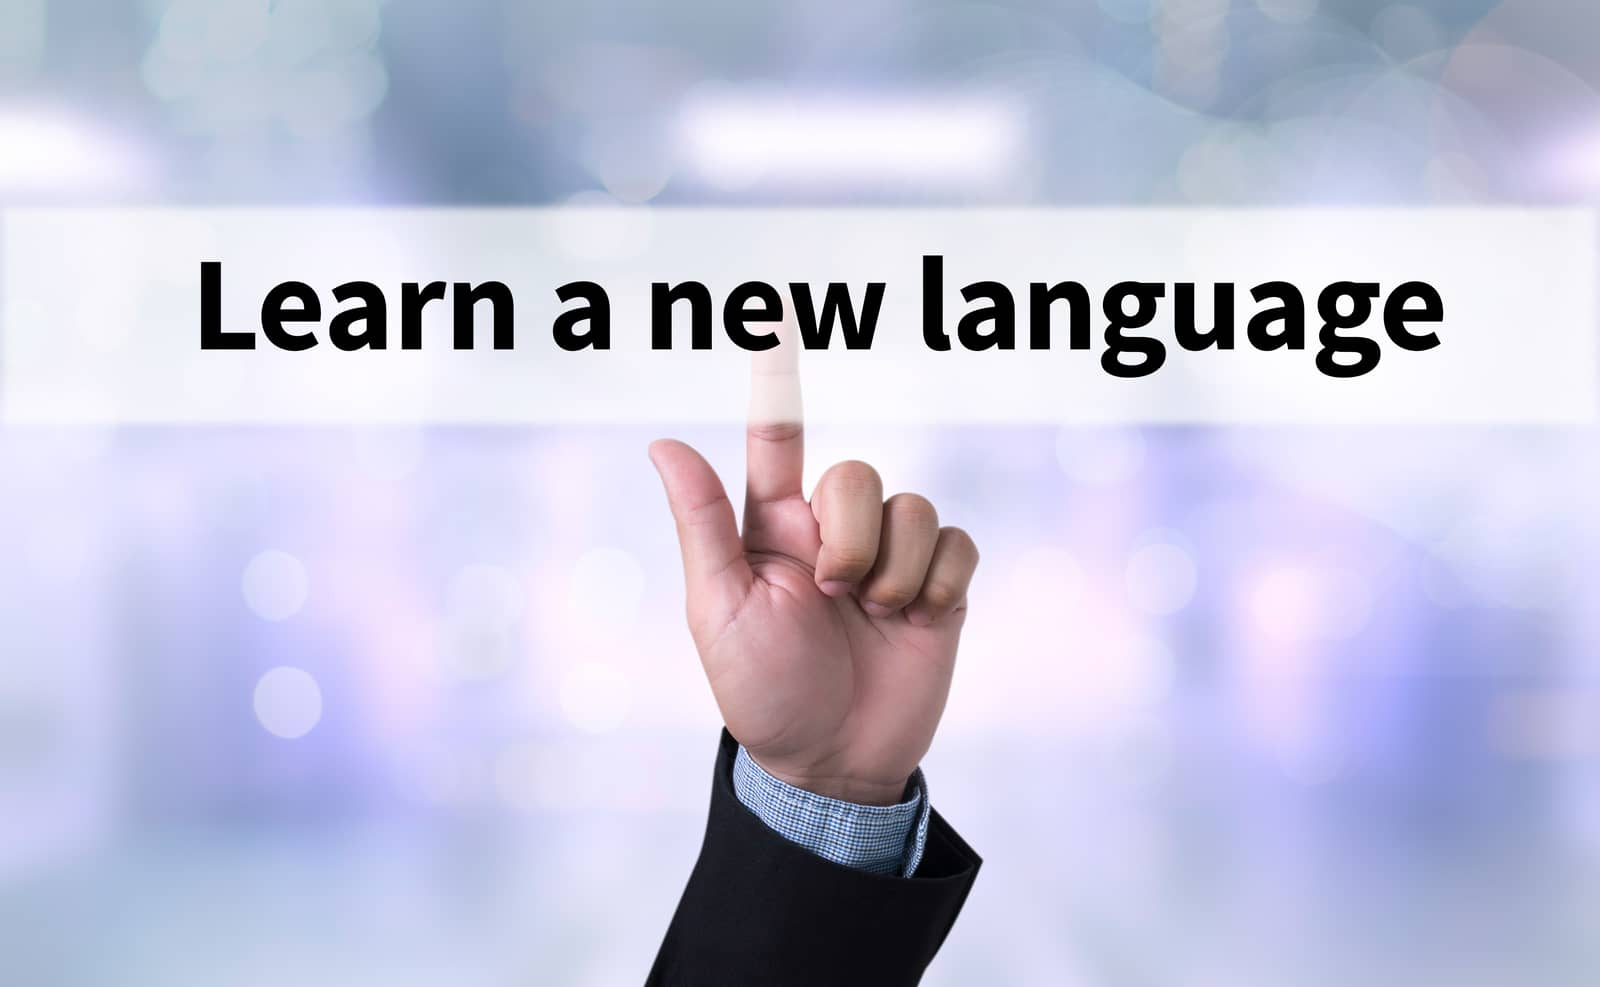 7 Most Useful And Appropriate Languages To Learn